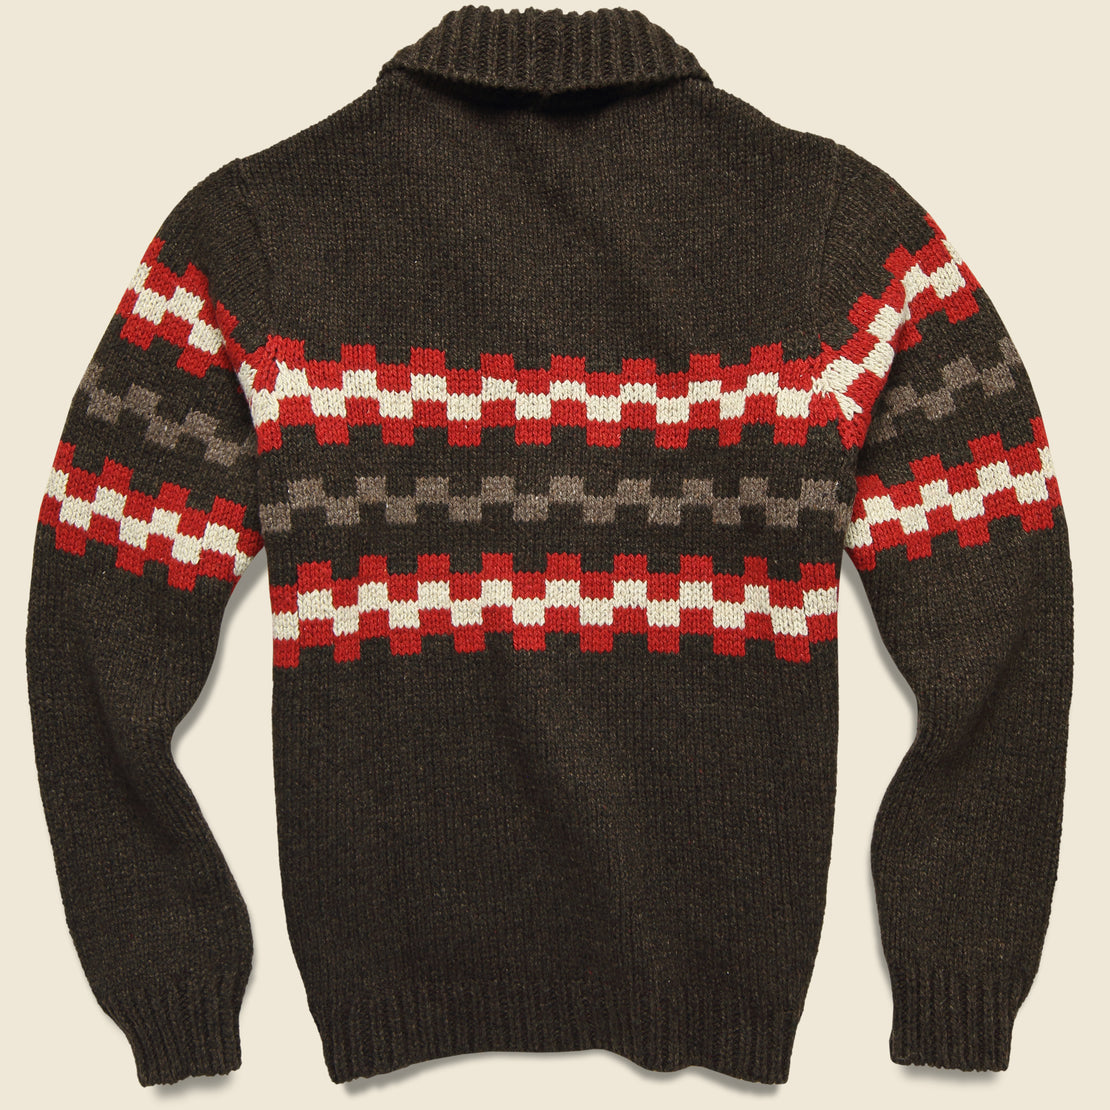 New Mexico Wool Sweater - Chocolate